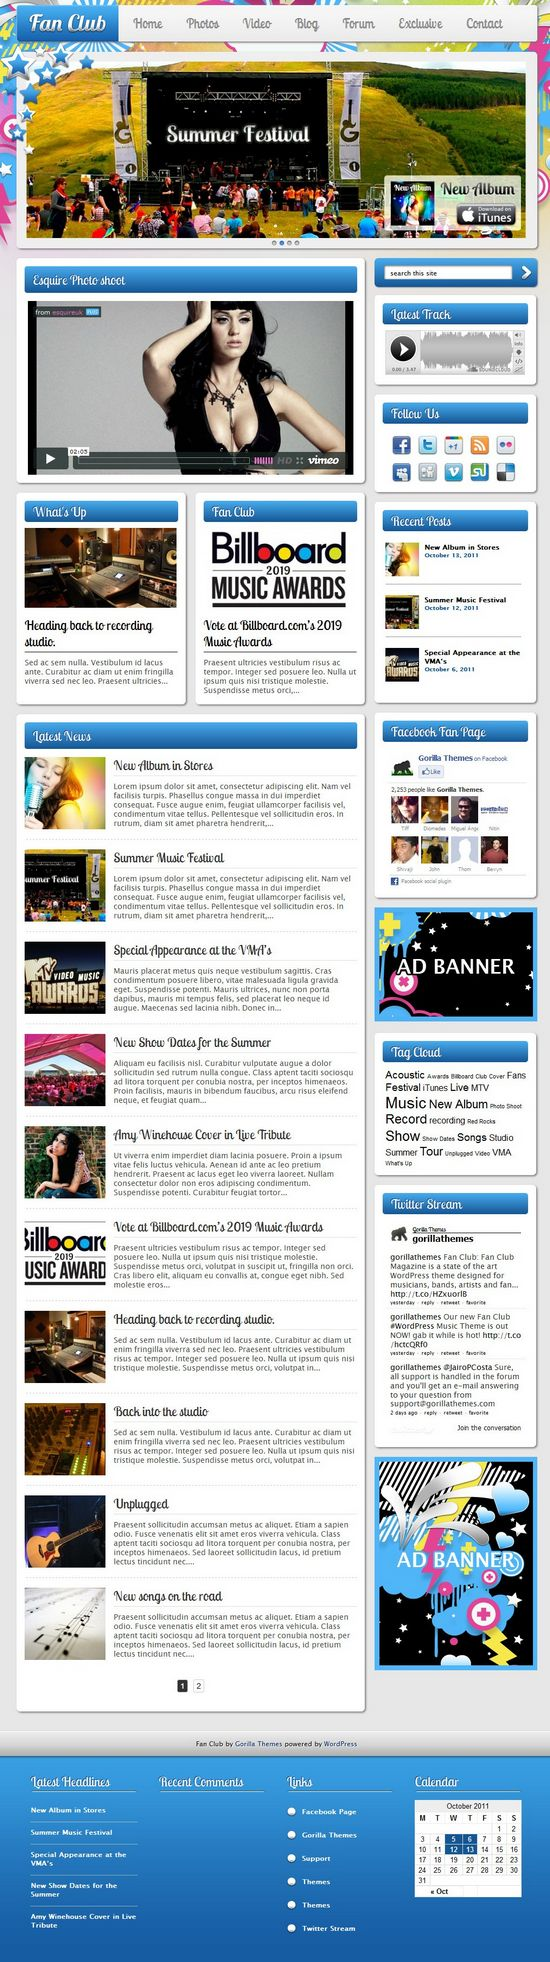 fan club gorilla themes avjthemescom - Fan Club WordPress Theme